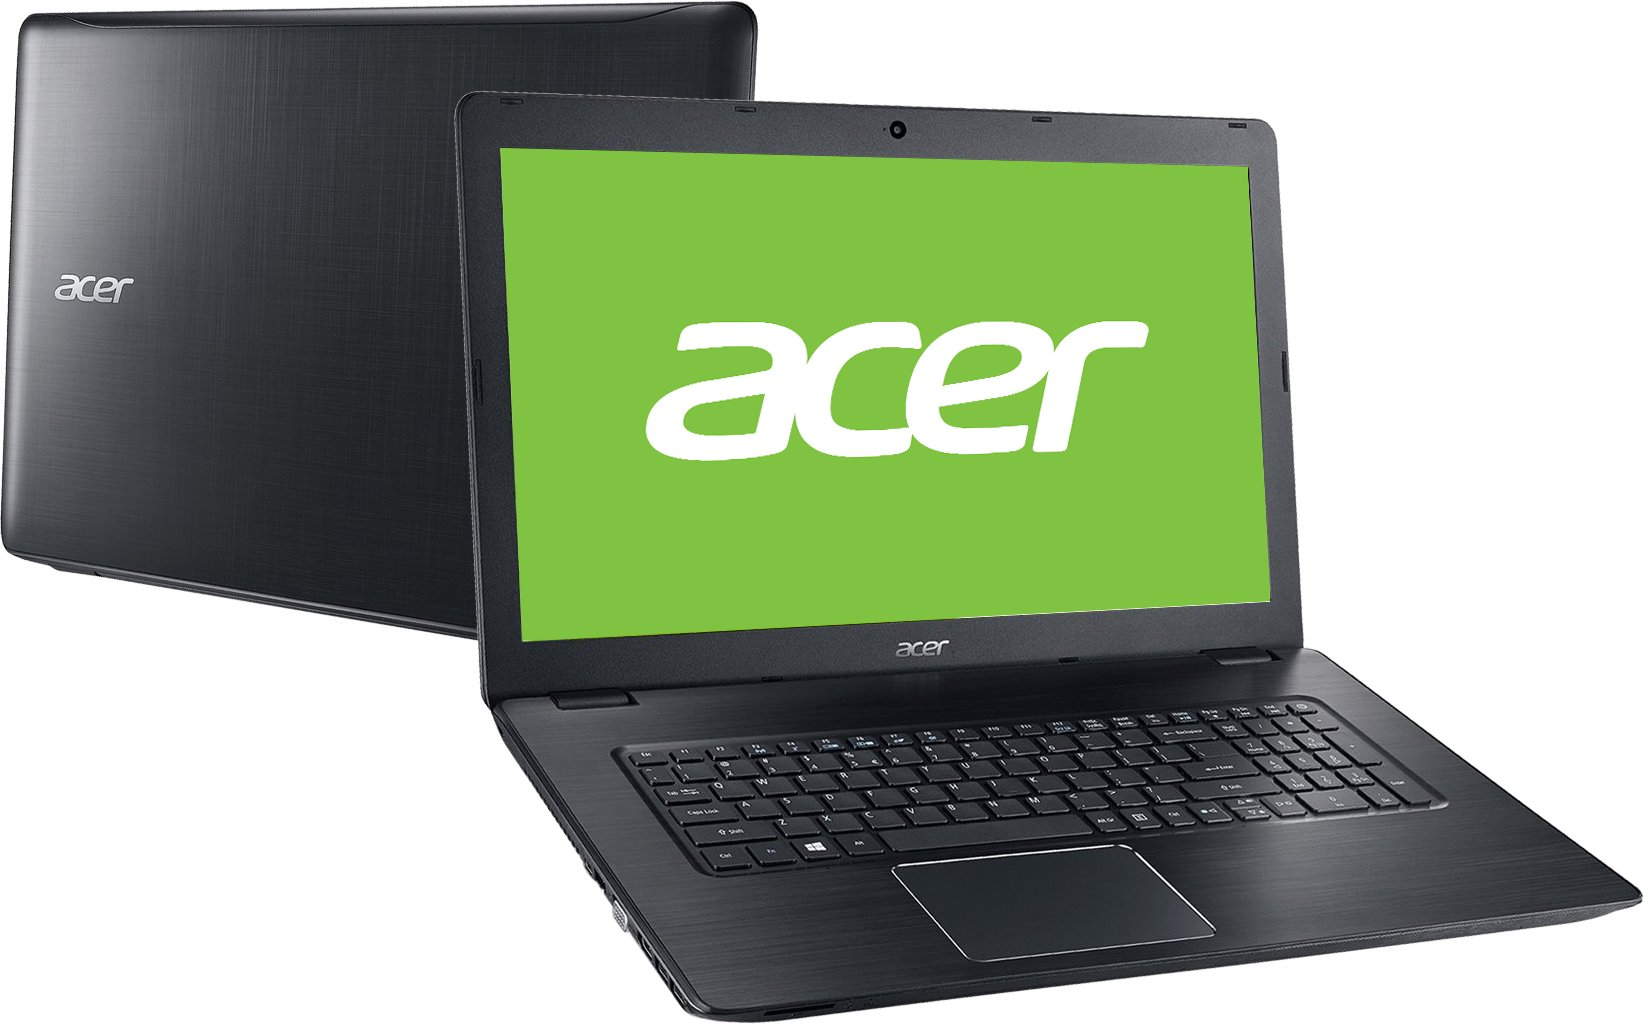 Acer Aspire F5-771G-742S